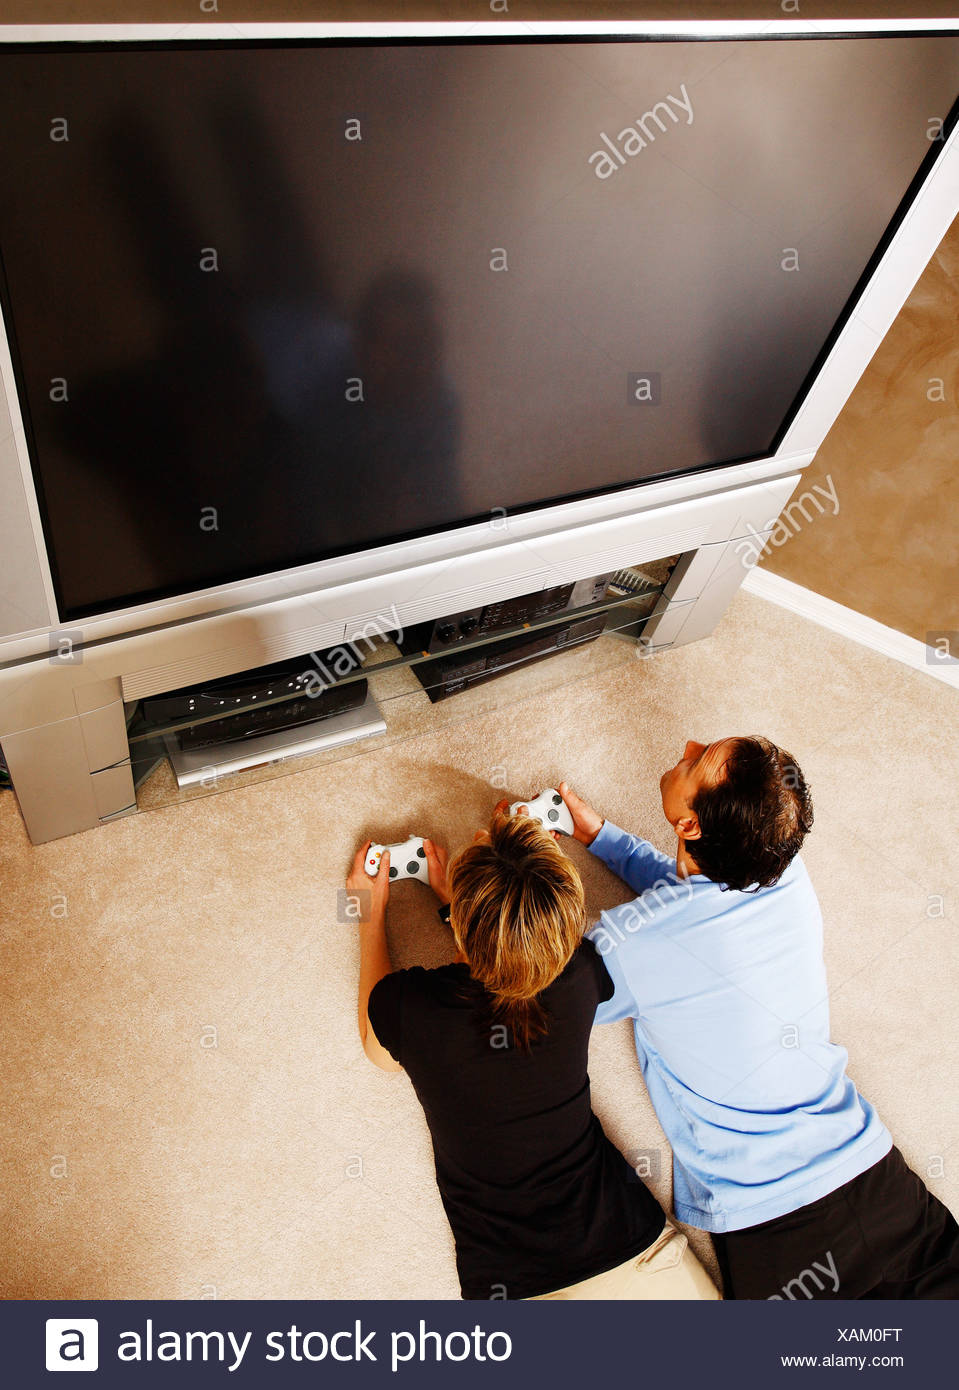 Couple playing video games - Stock Image